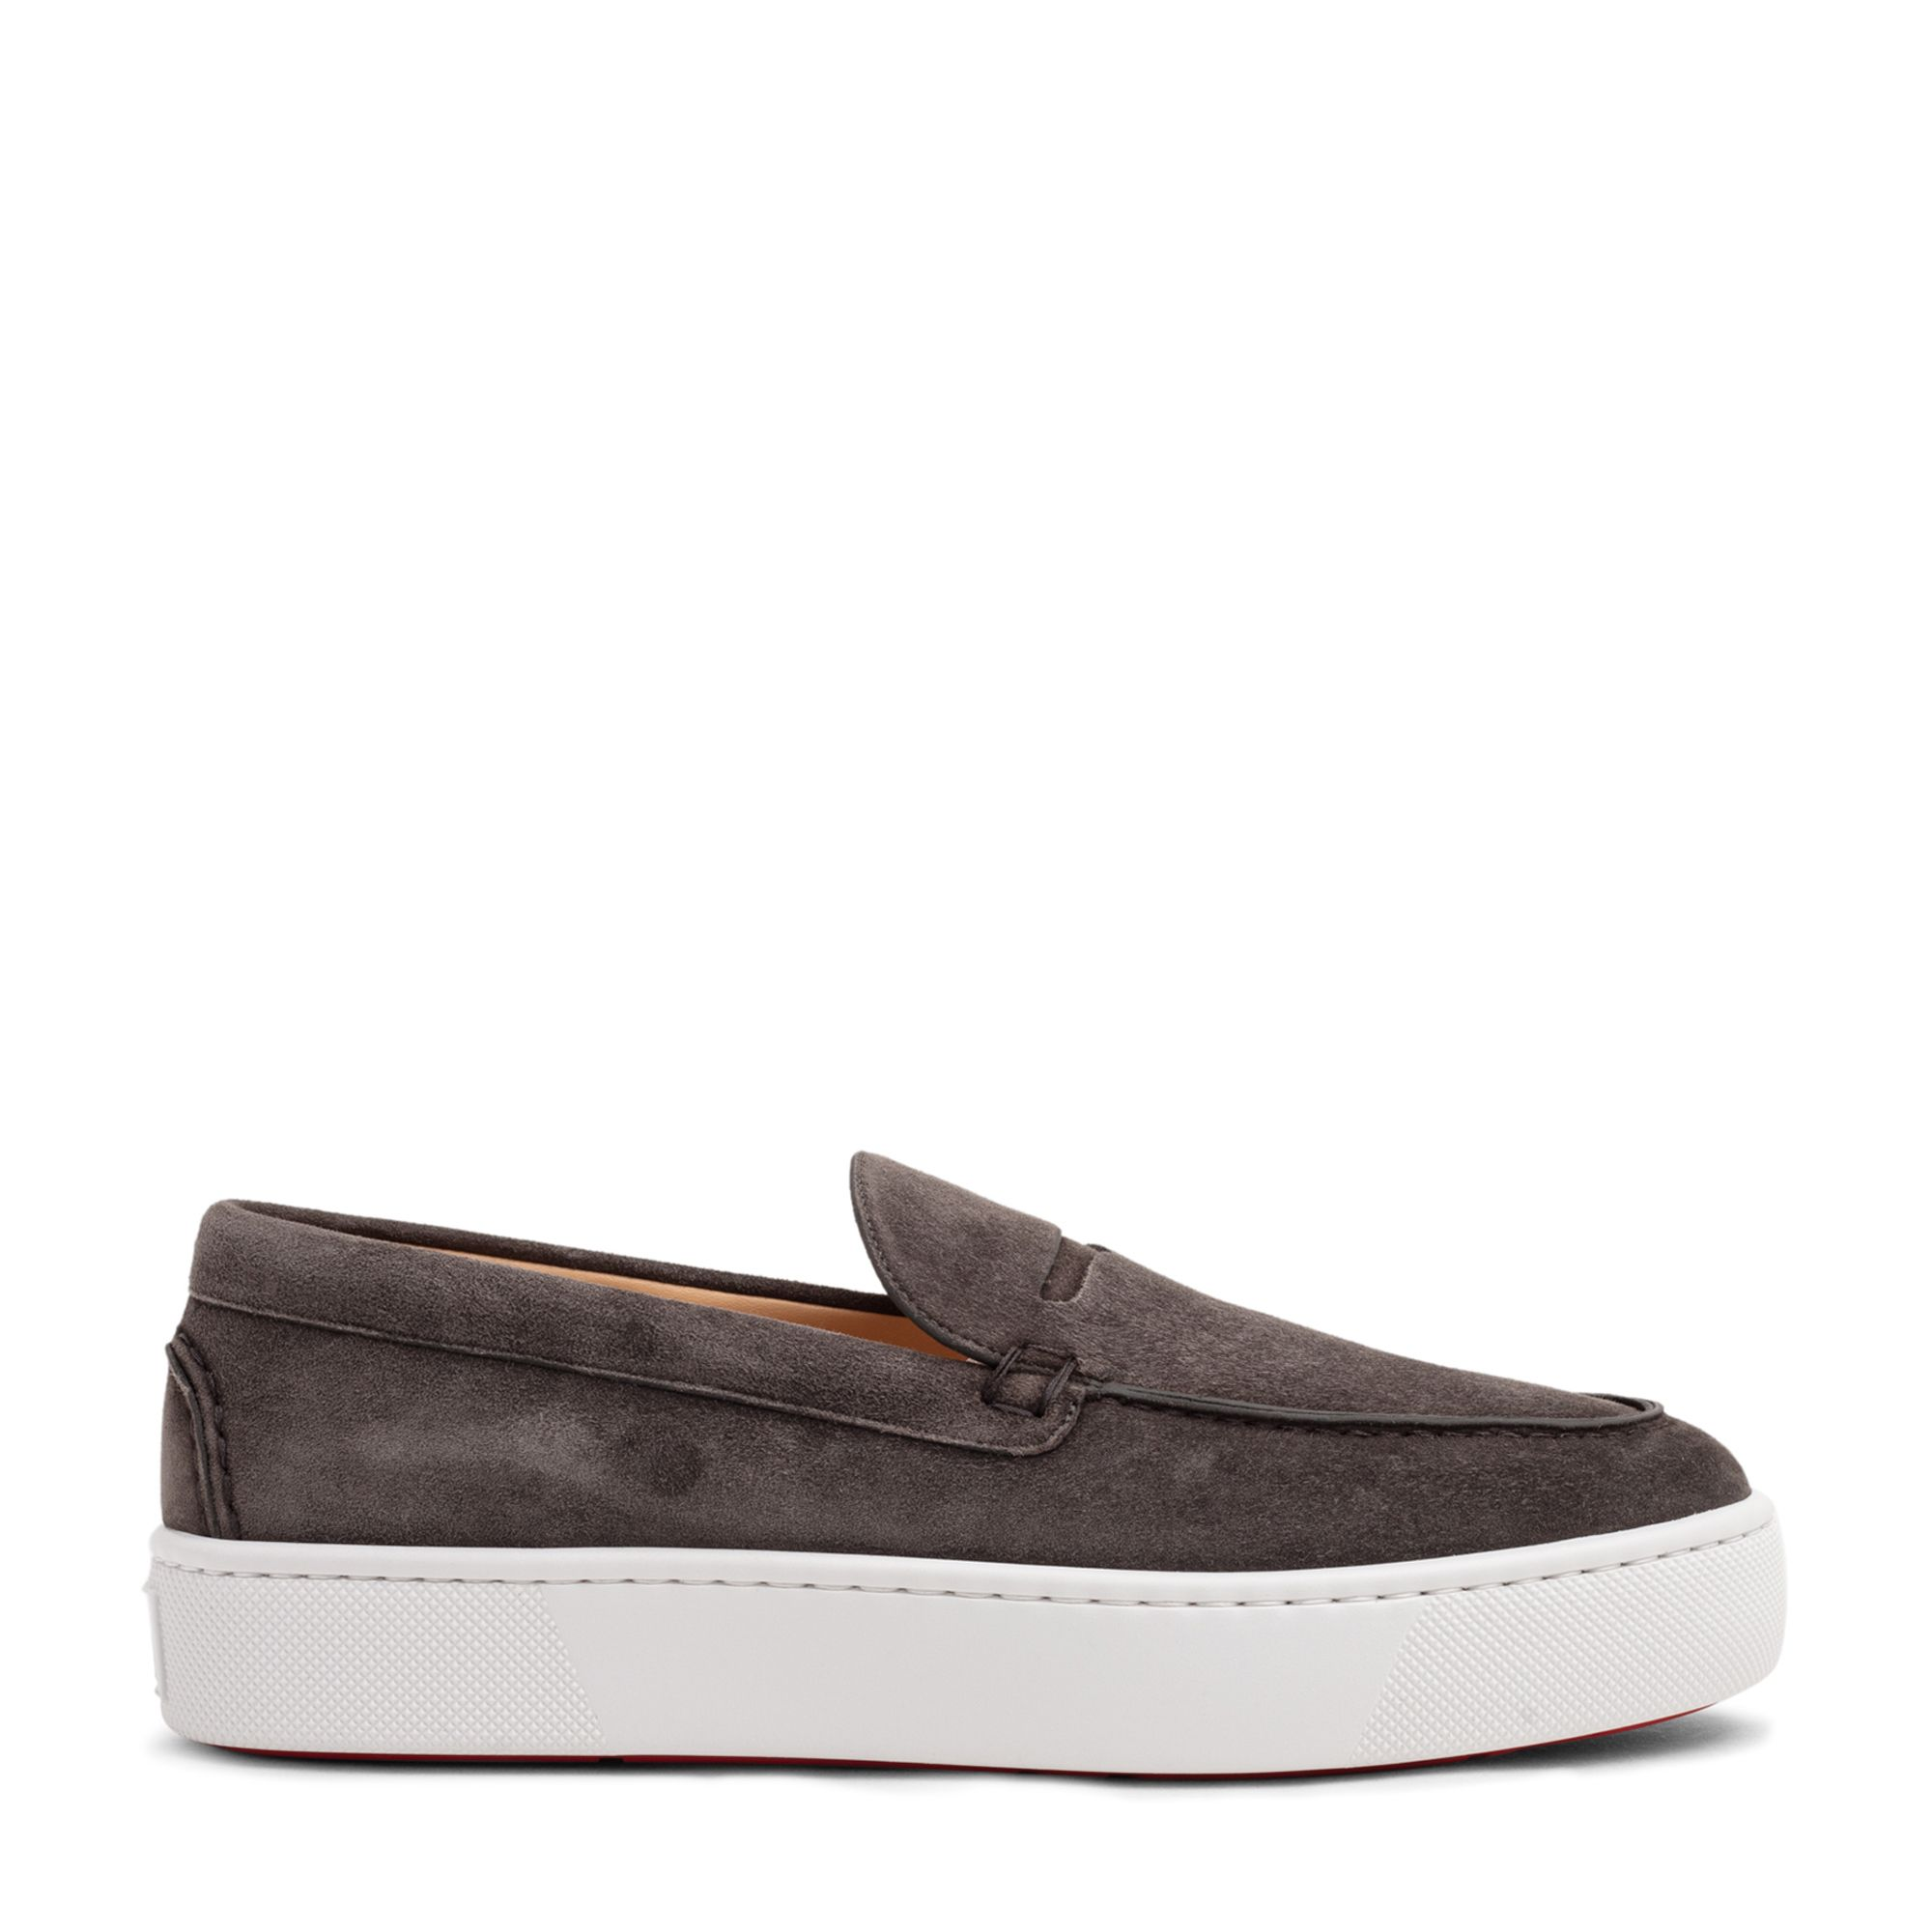 Paqueboat loafers